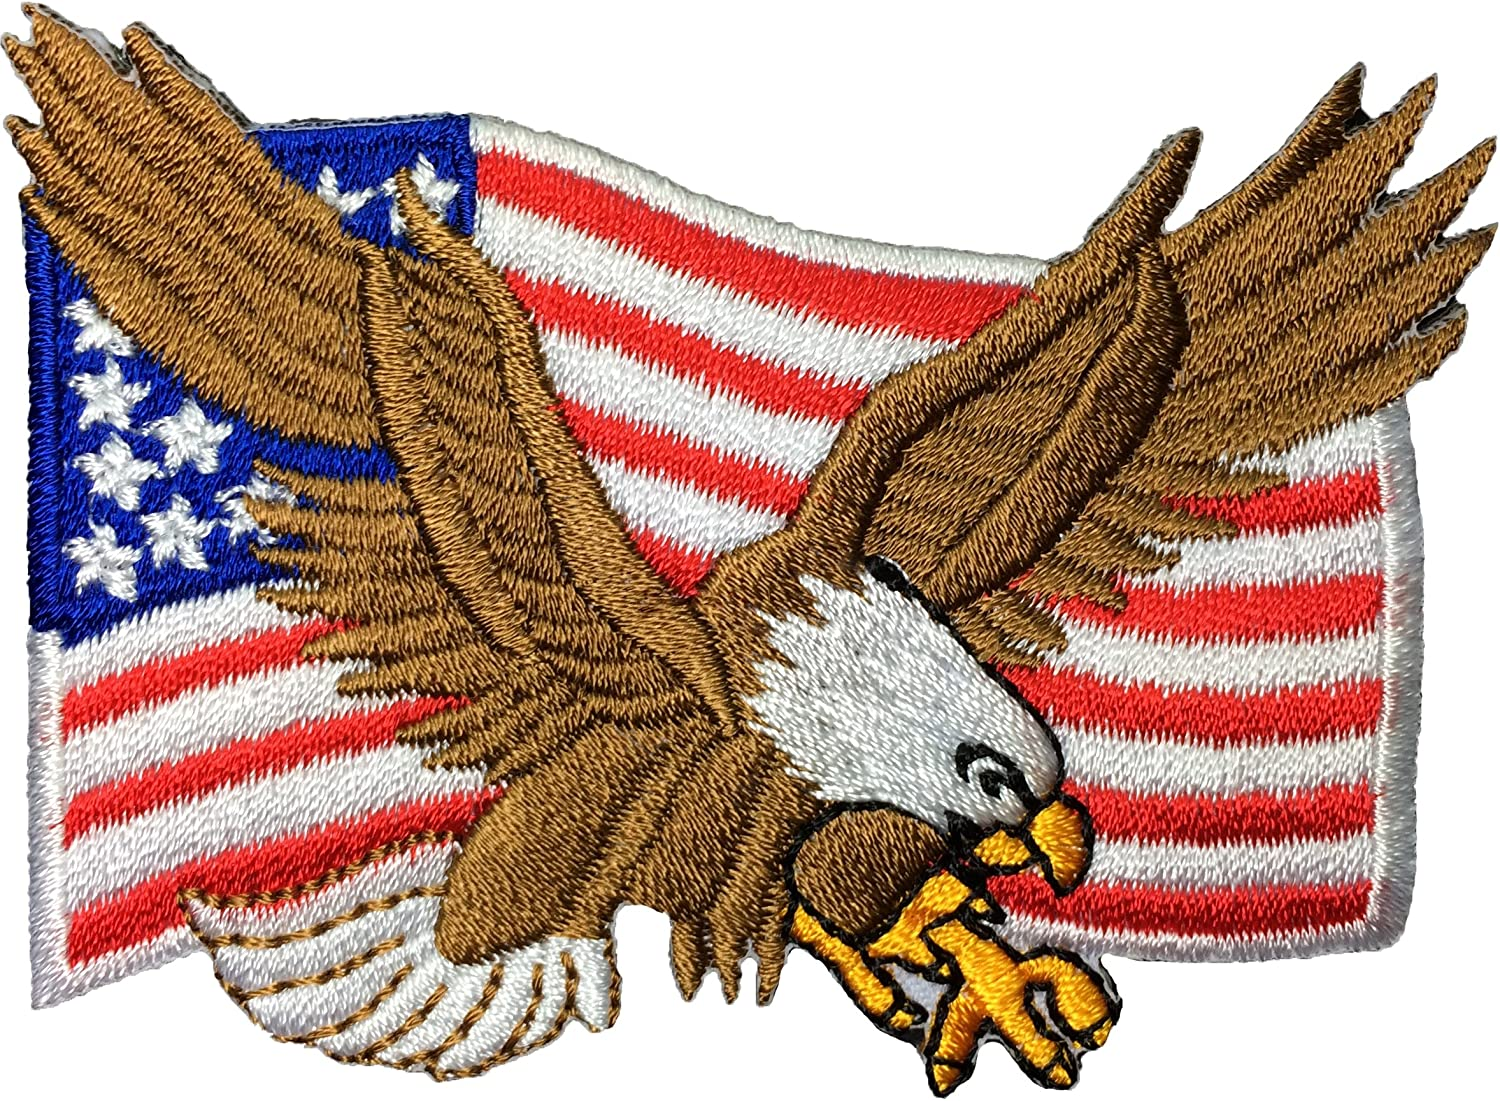 BALD EAGLE Iron On Patch USA American Flag Patriotic Military